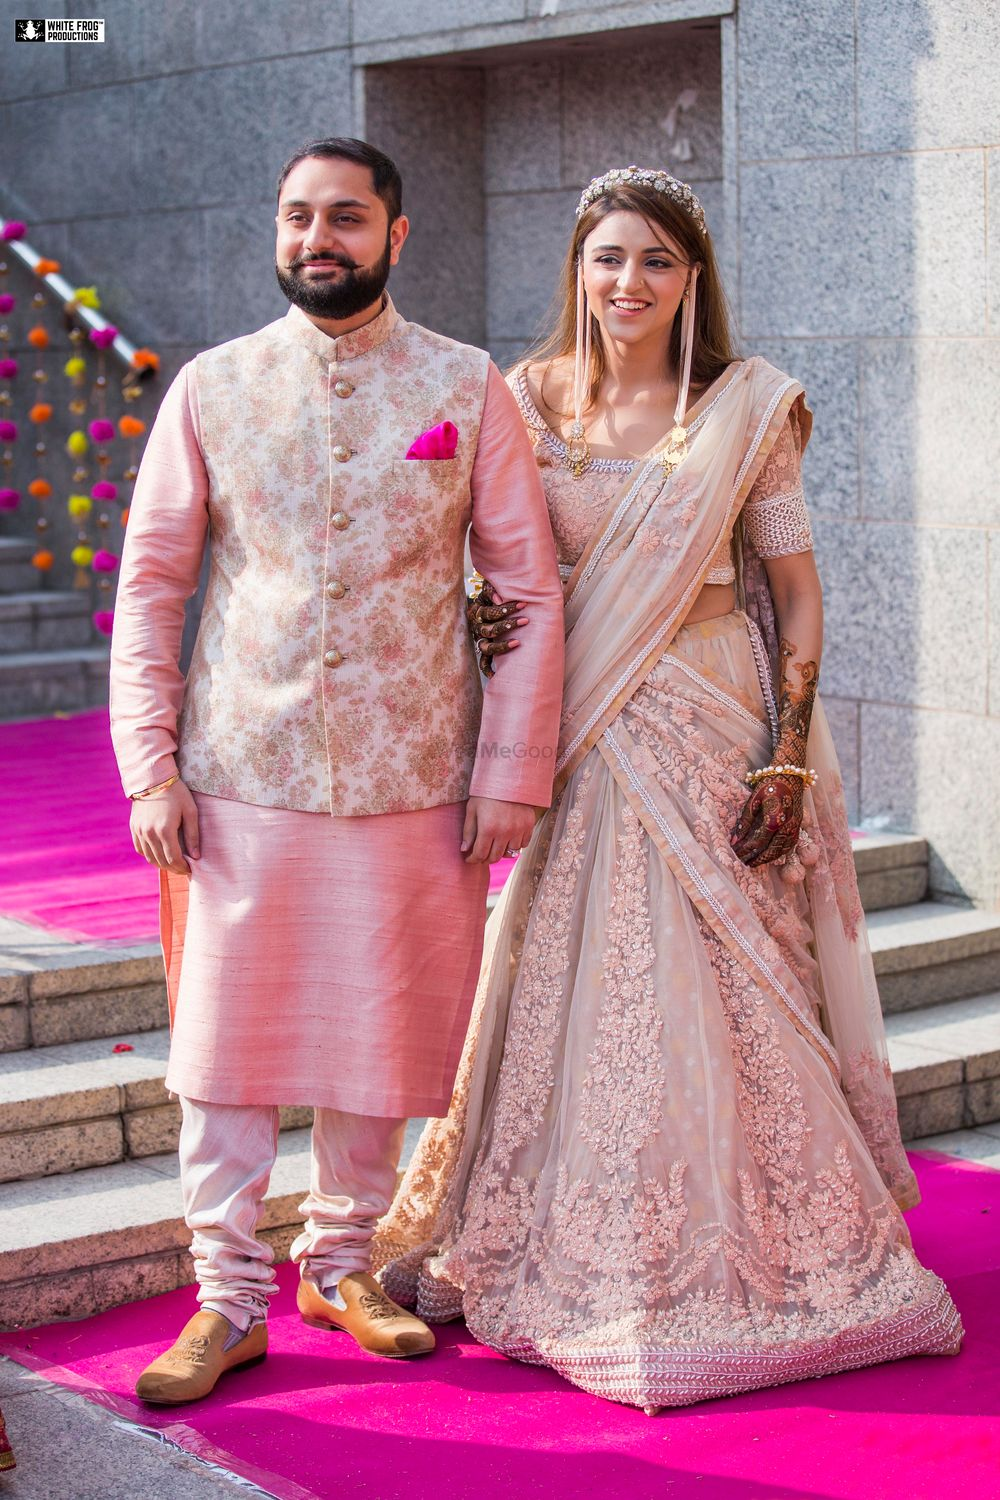 Photo of Matching bride and groom on mehendi in pastels